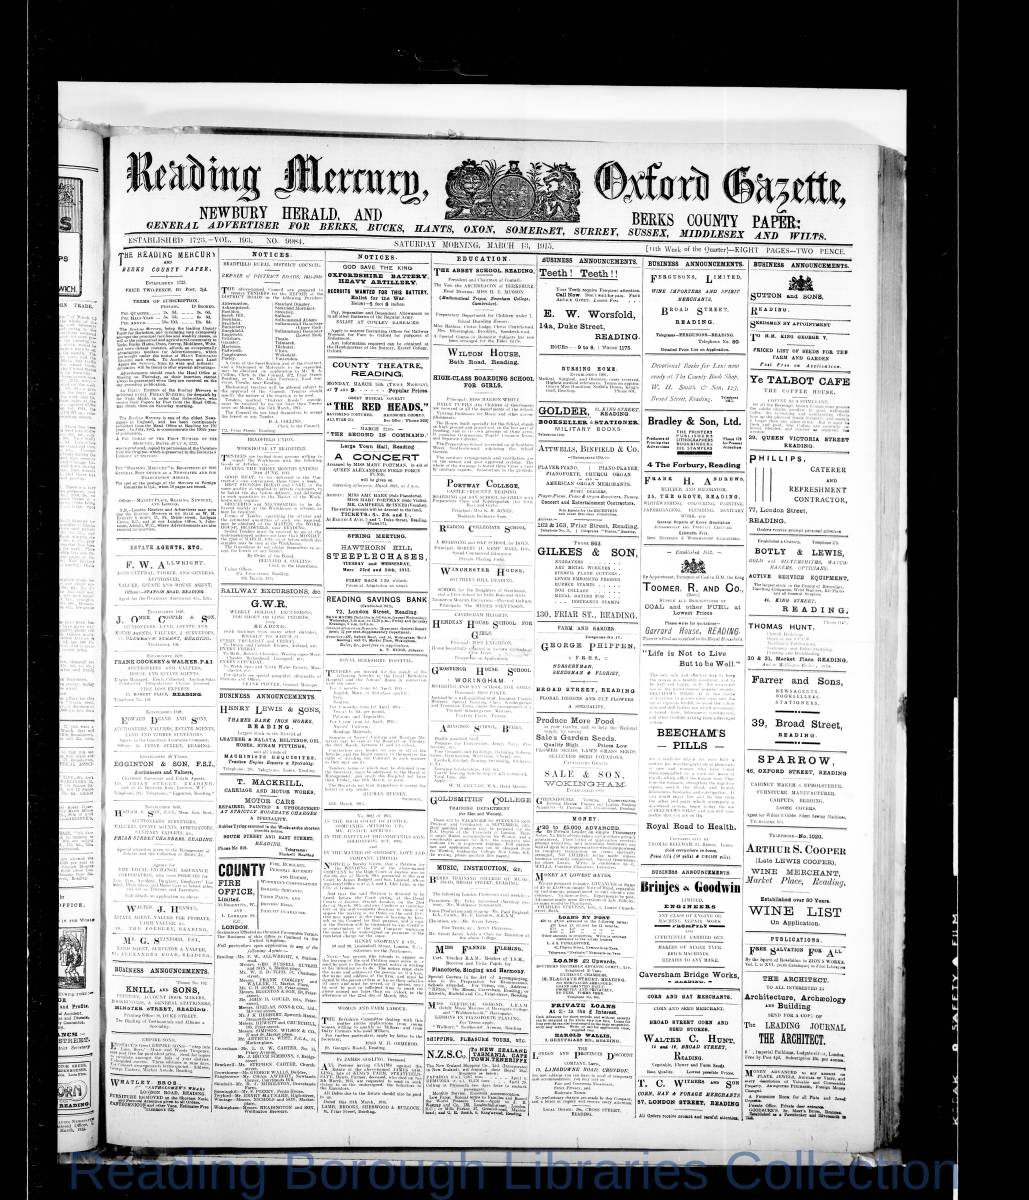 Reading Mercury Oxford Gazette Saturday, March 13, 1915. Pg 1